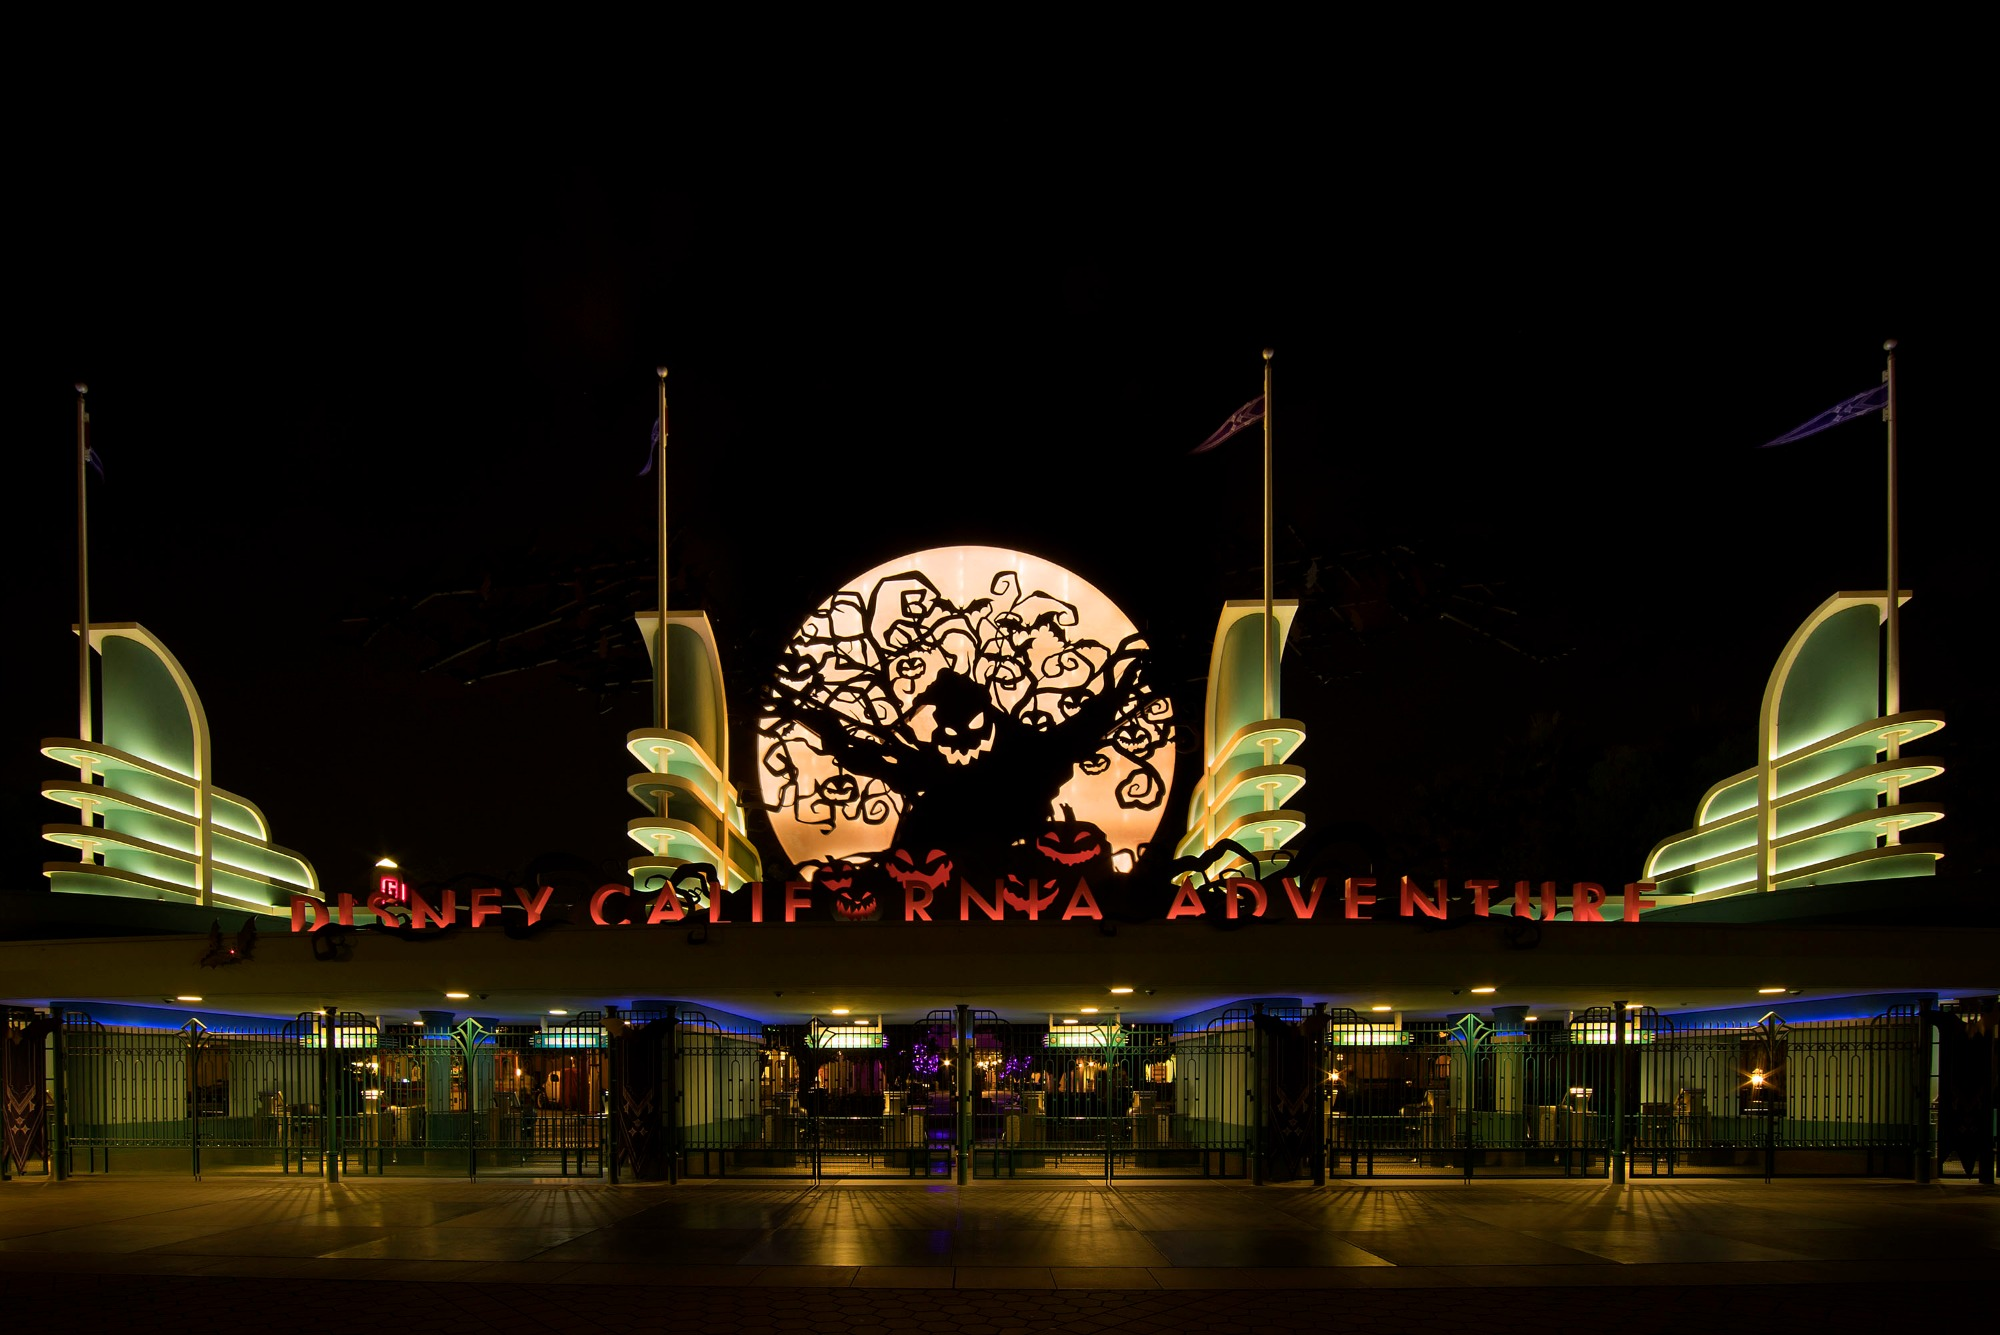 HALLOWEEN TIME COMES TO DISNEY CALIFORNIA ADVENTURE PARK -- Oogie Boogie takes over Disney California Adventure with his twisted tale of a forever Halloween, inspired by ÒTim BurtonÕs The Nightmare Before ChristmasÓ during Halloween Time at the Disneyland Resort. Oogie BoogieÕs oversized silhouette beckons guests through the main entrance of Disney California Adventure park and he brings to life a swarm of bats around Carthay Circle Restaurant and Lounge. (Joshua Sudock/Disneyland Resort)